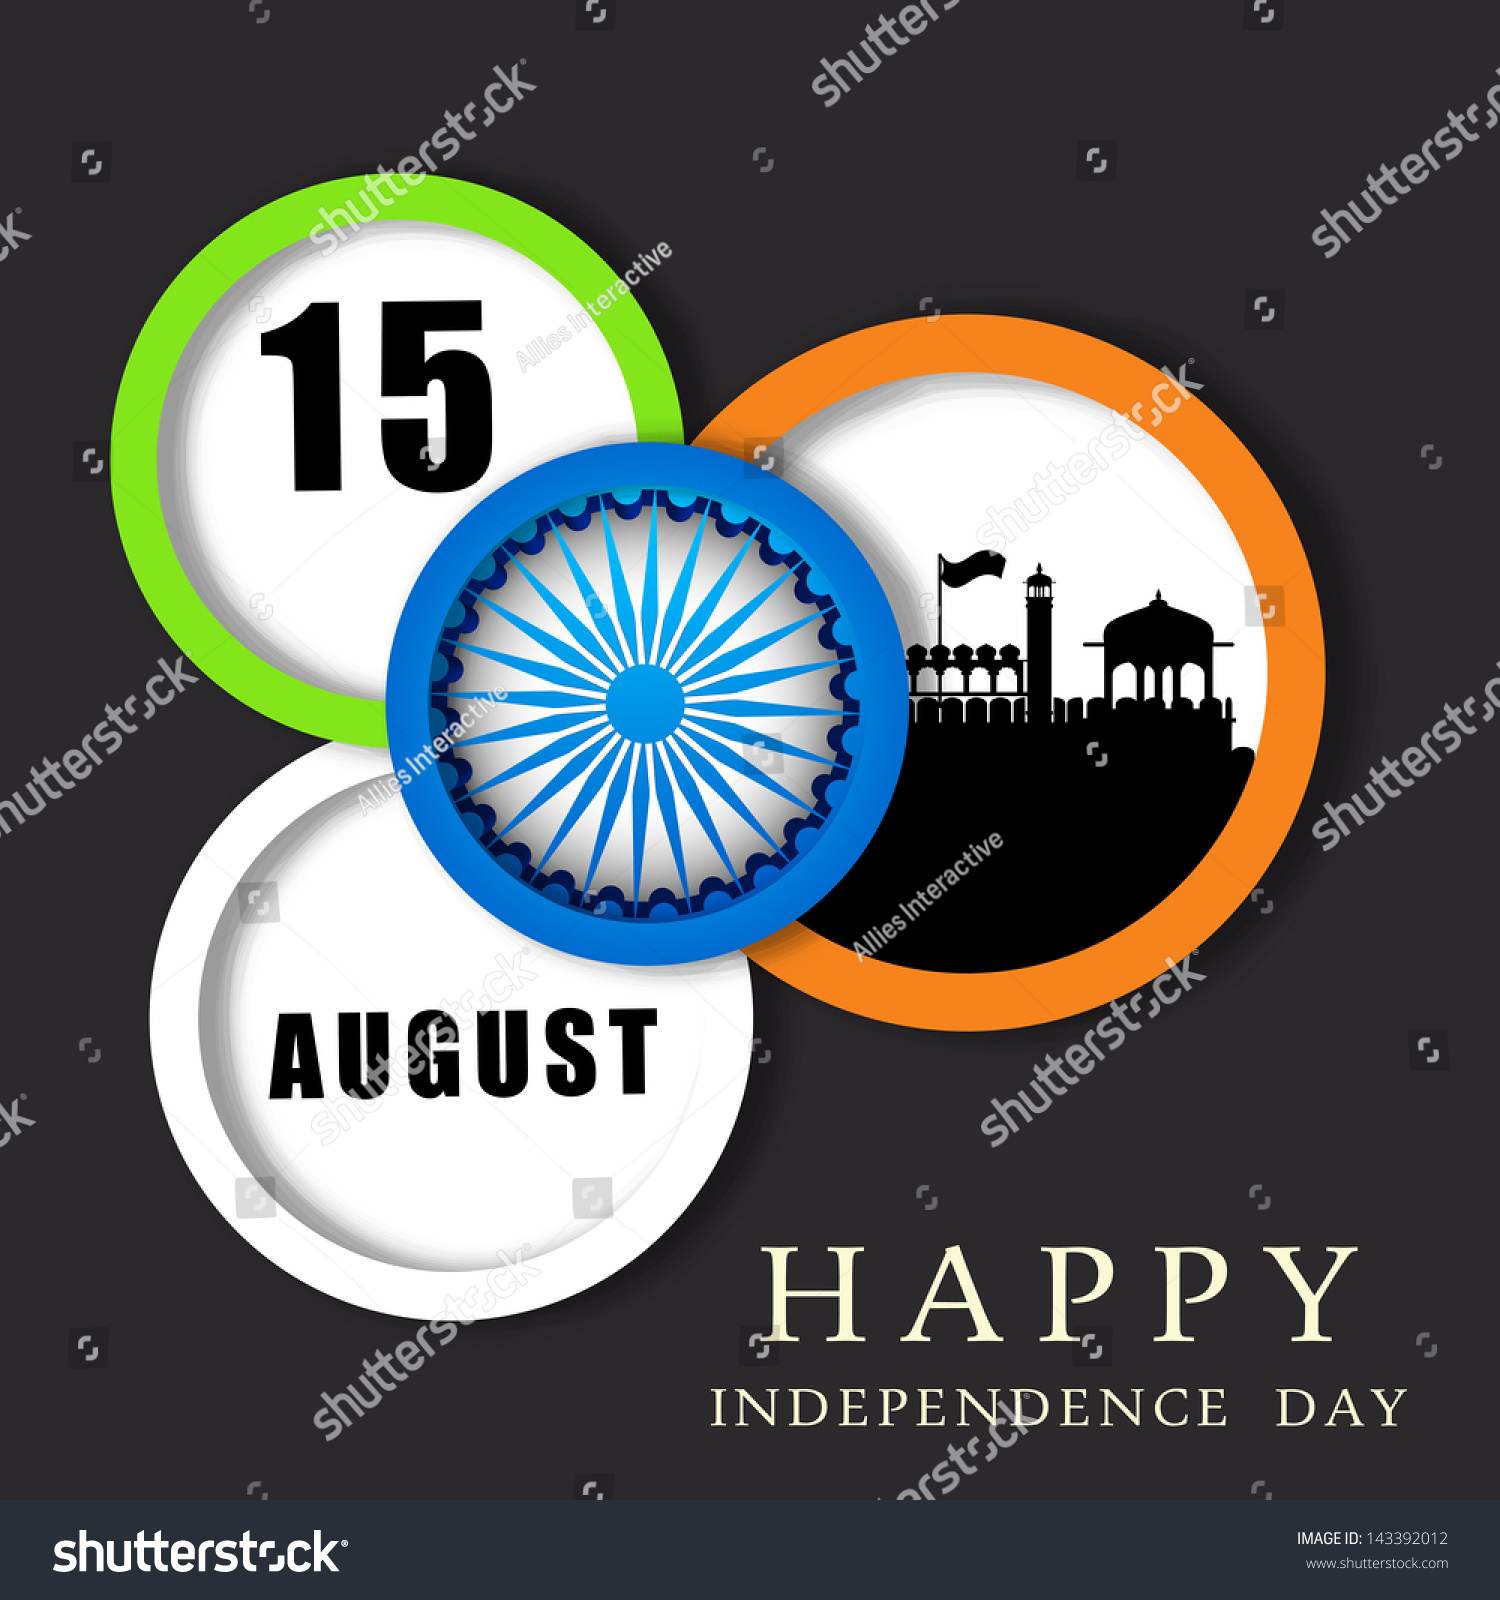 Colors website ashoka - Indian Independence Day Stickers Labels Or Tags In National Flag Colors With Ashoka Wheel